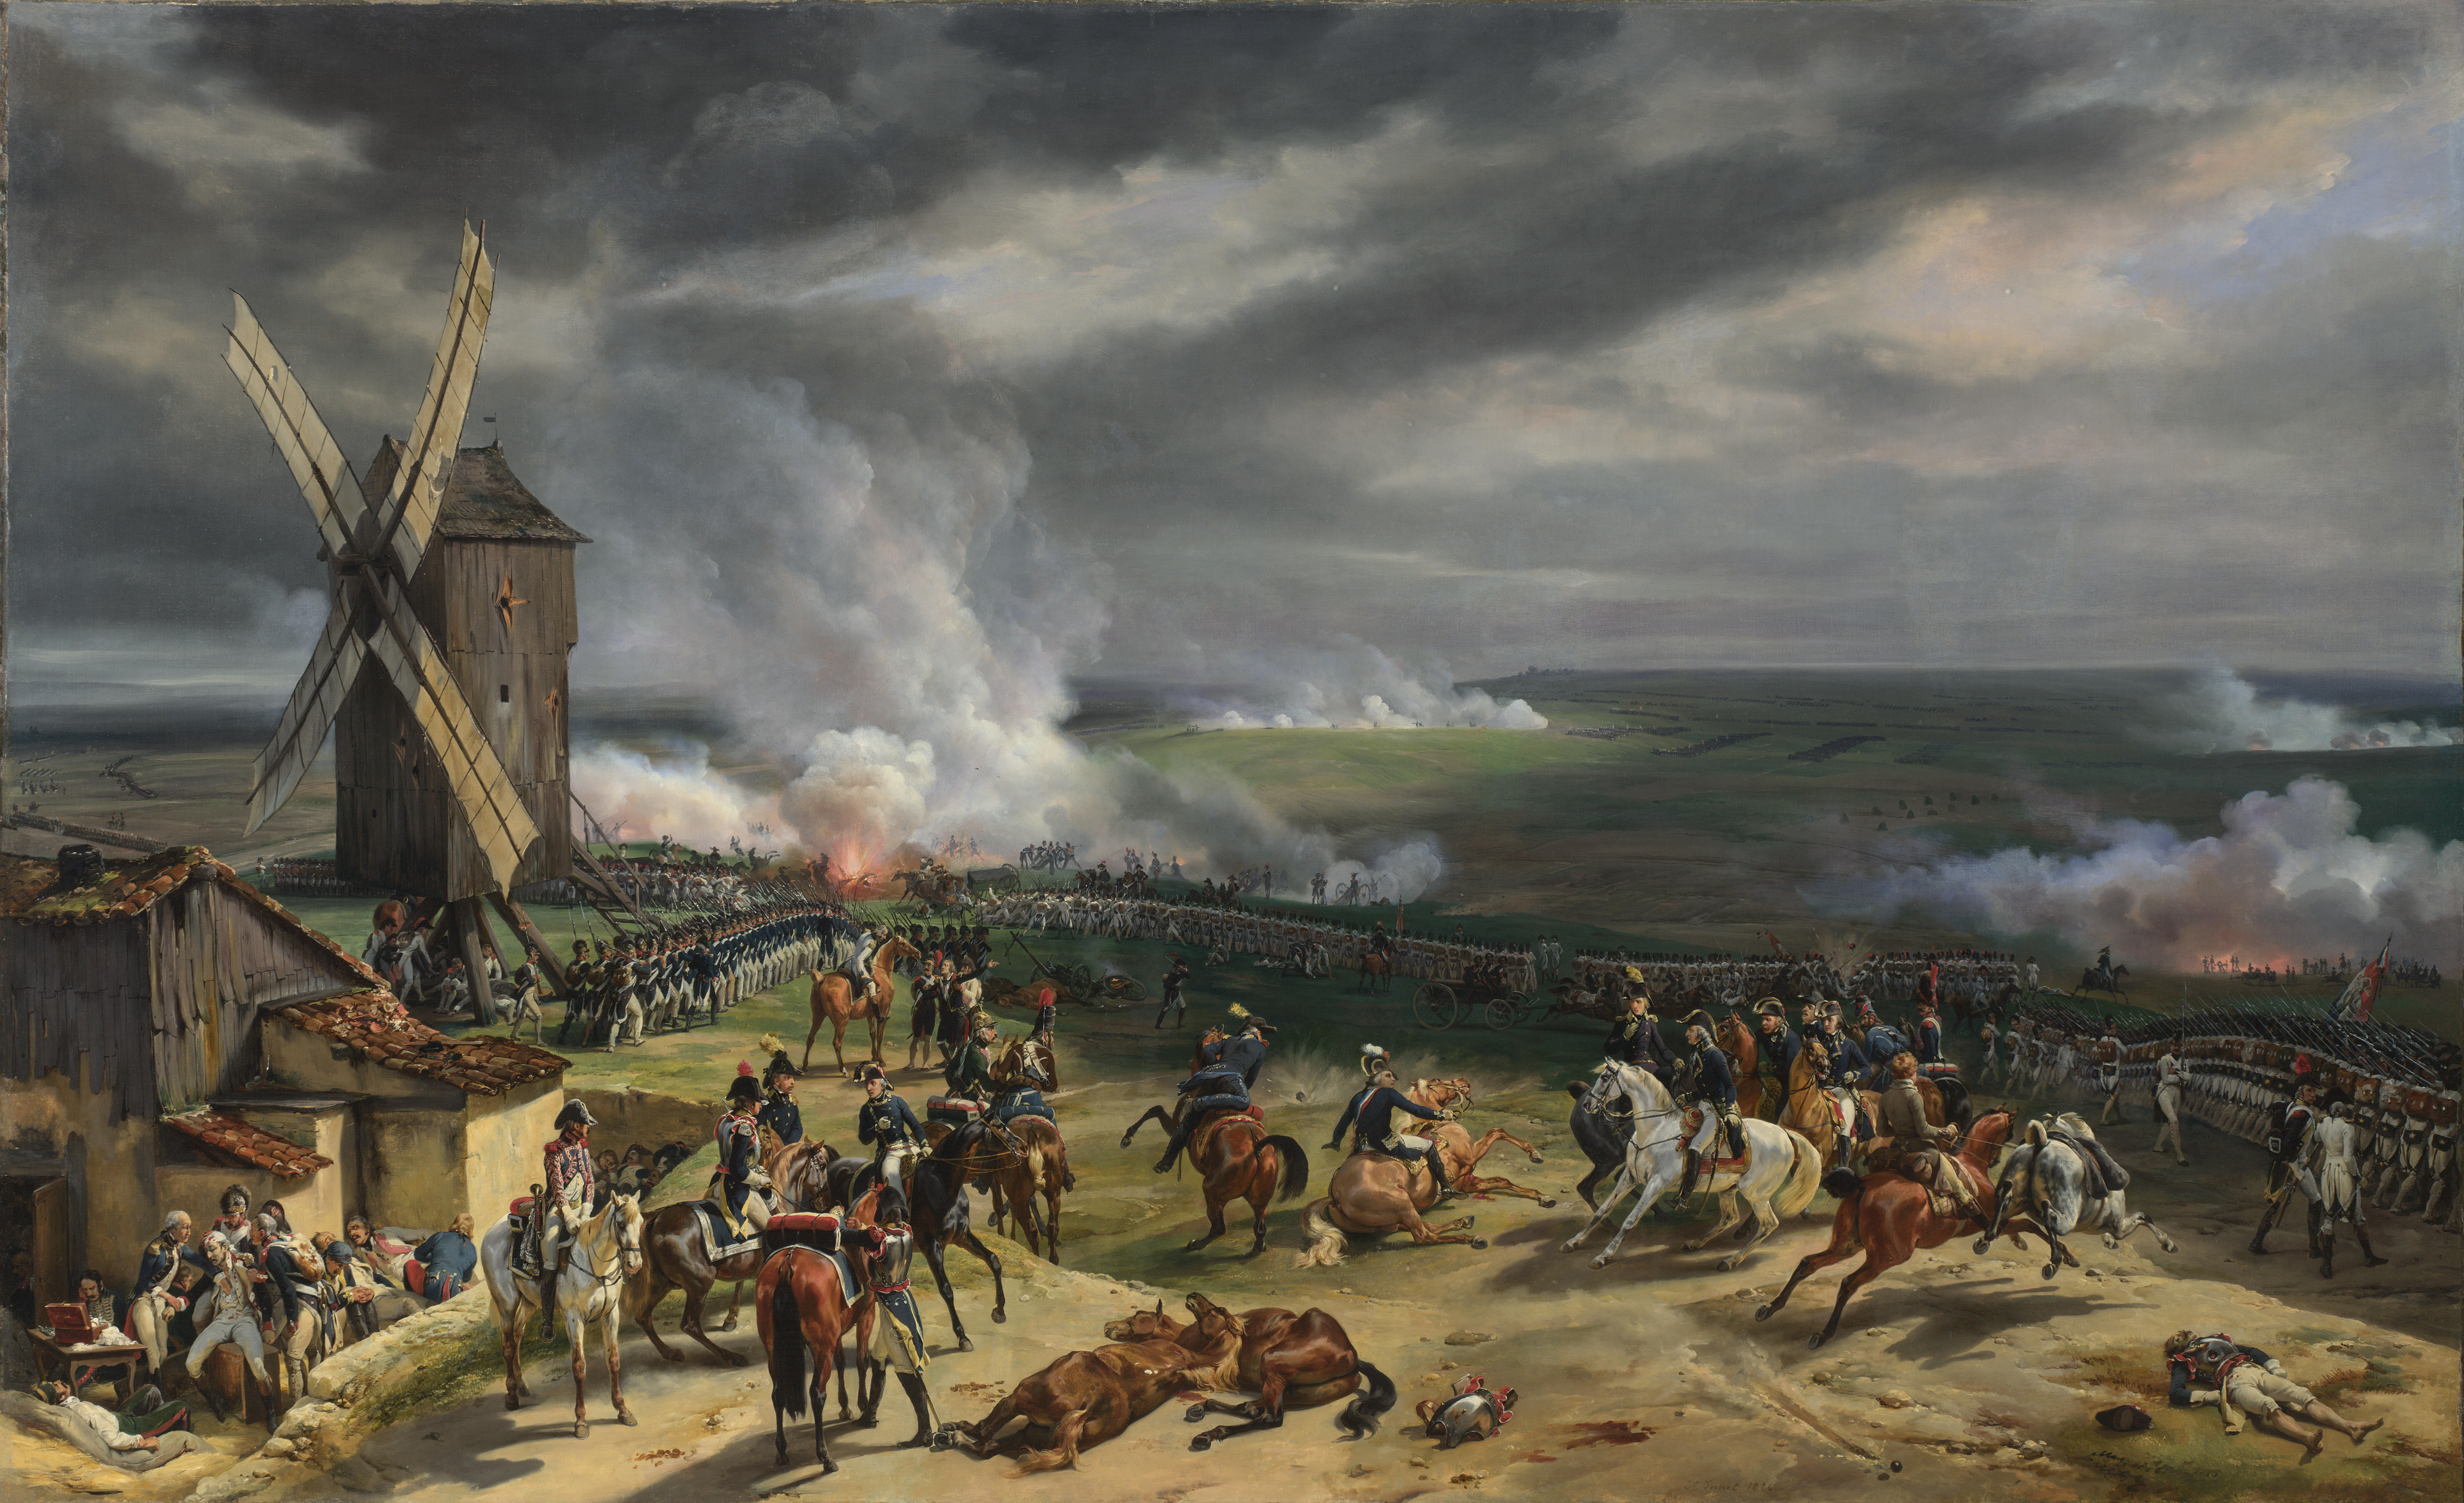 Painting of the Battle of Valmy by Horace Vernet from 1826. The white-uniformed infantry to the right are regulars while the blue-coated ranks to the left represent the citizen volunteers of 1791.